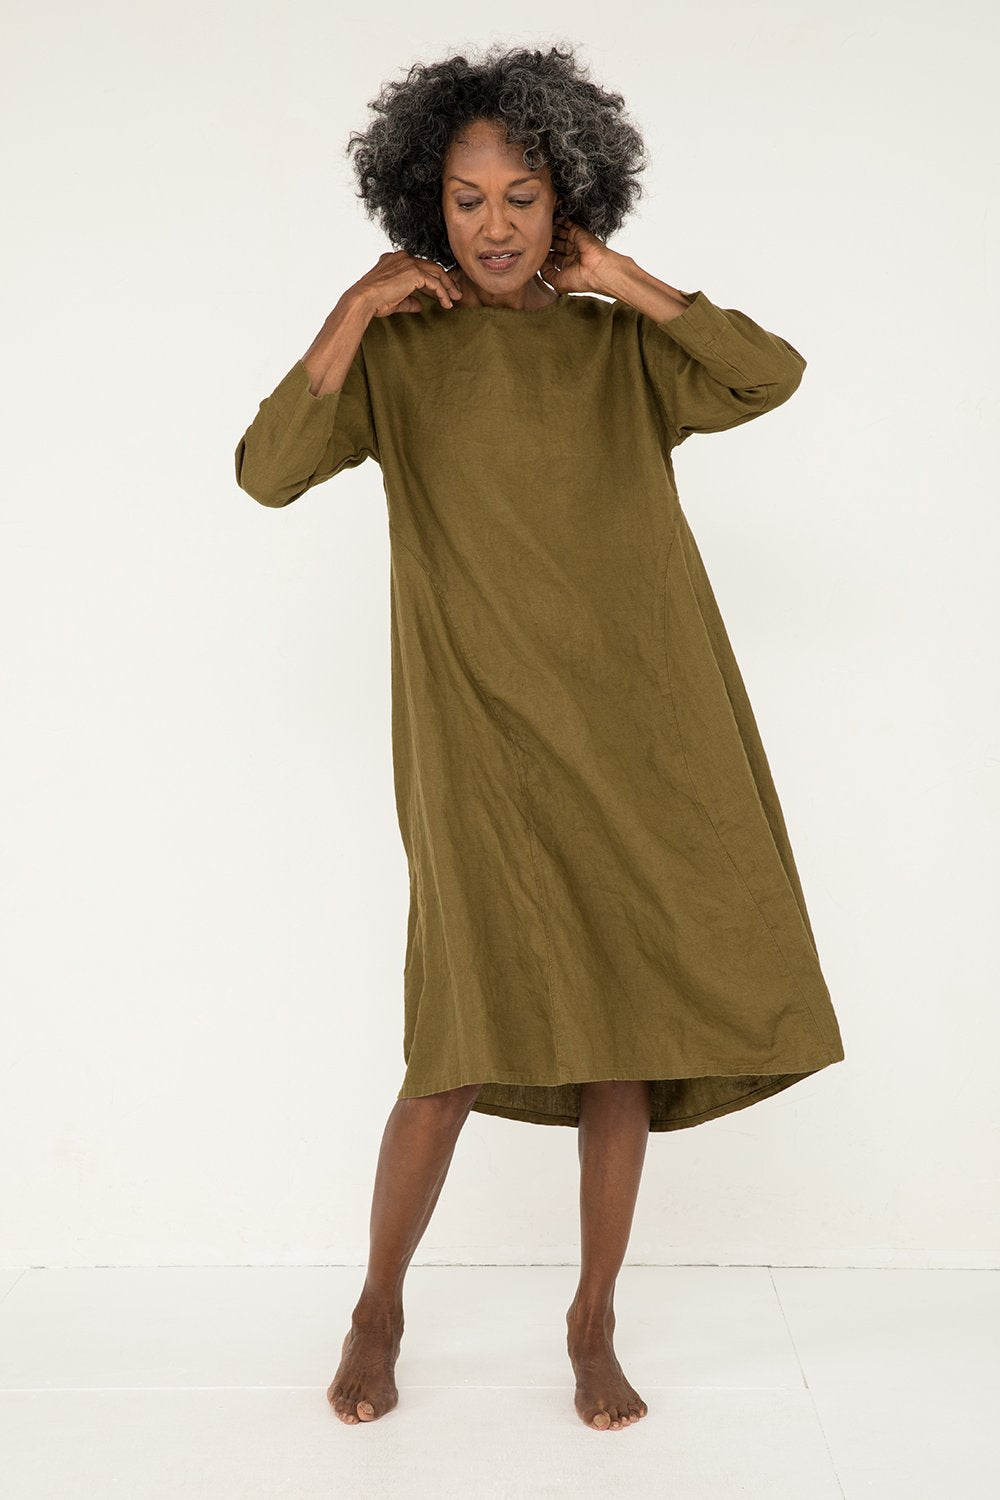 Parabola Dress in Midweight Linen Olive - Pat-S